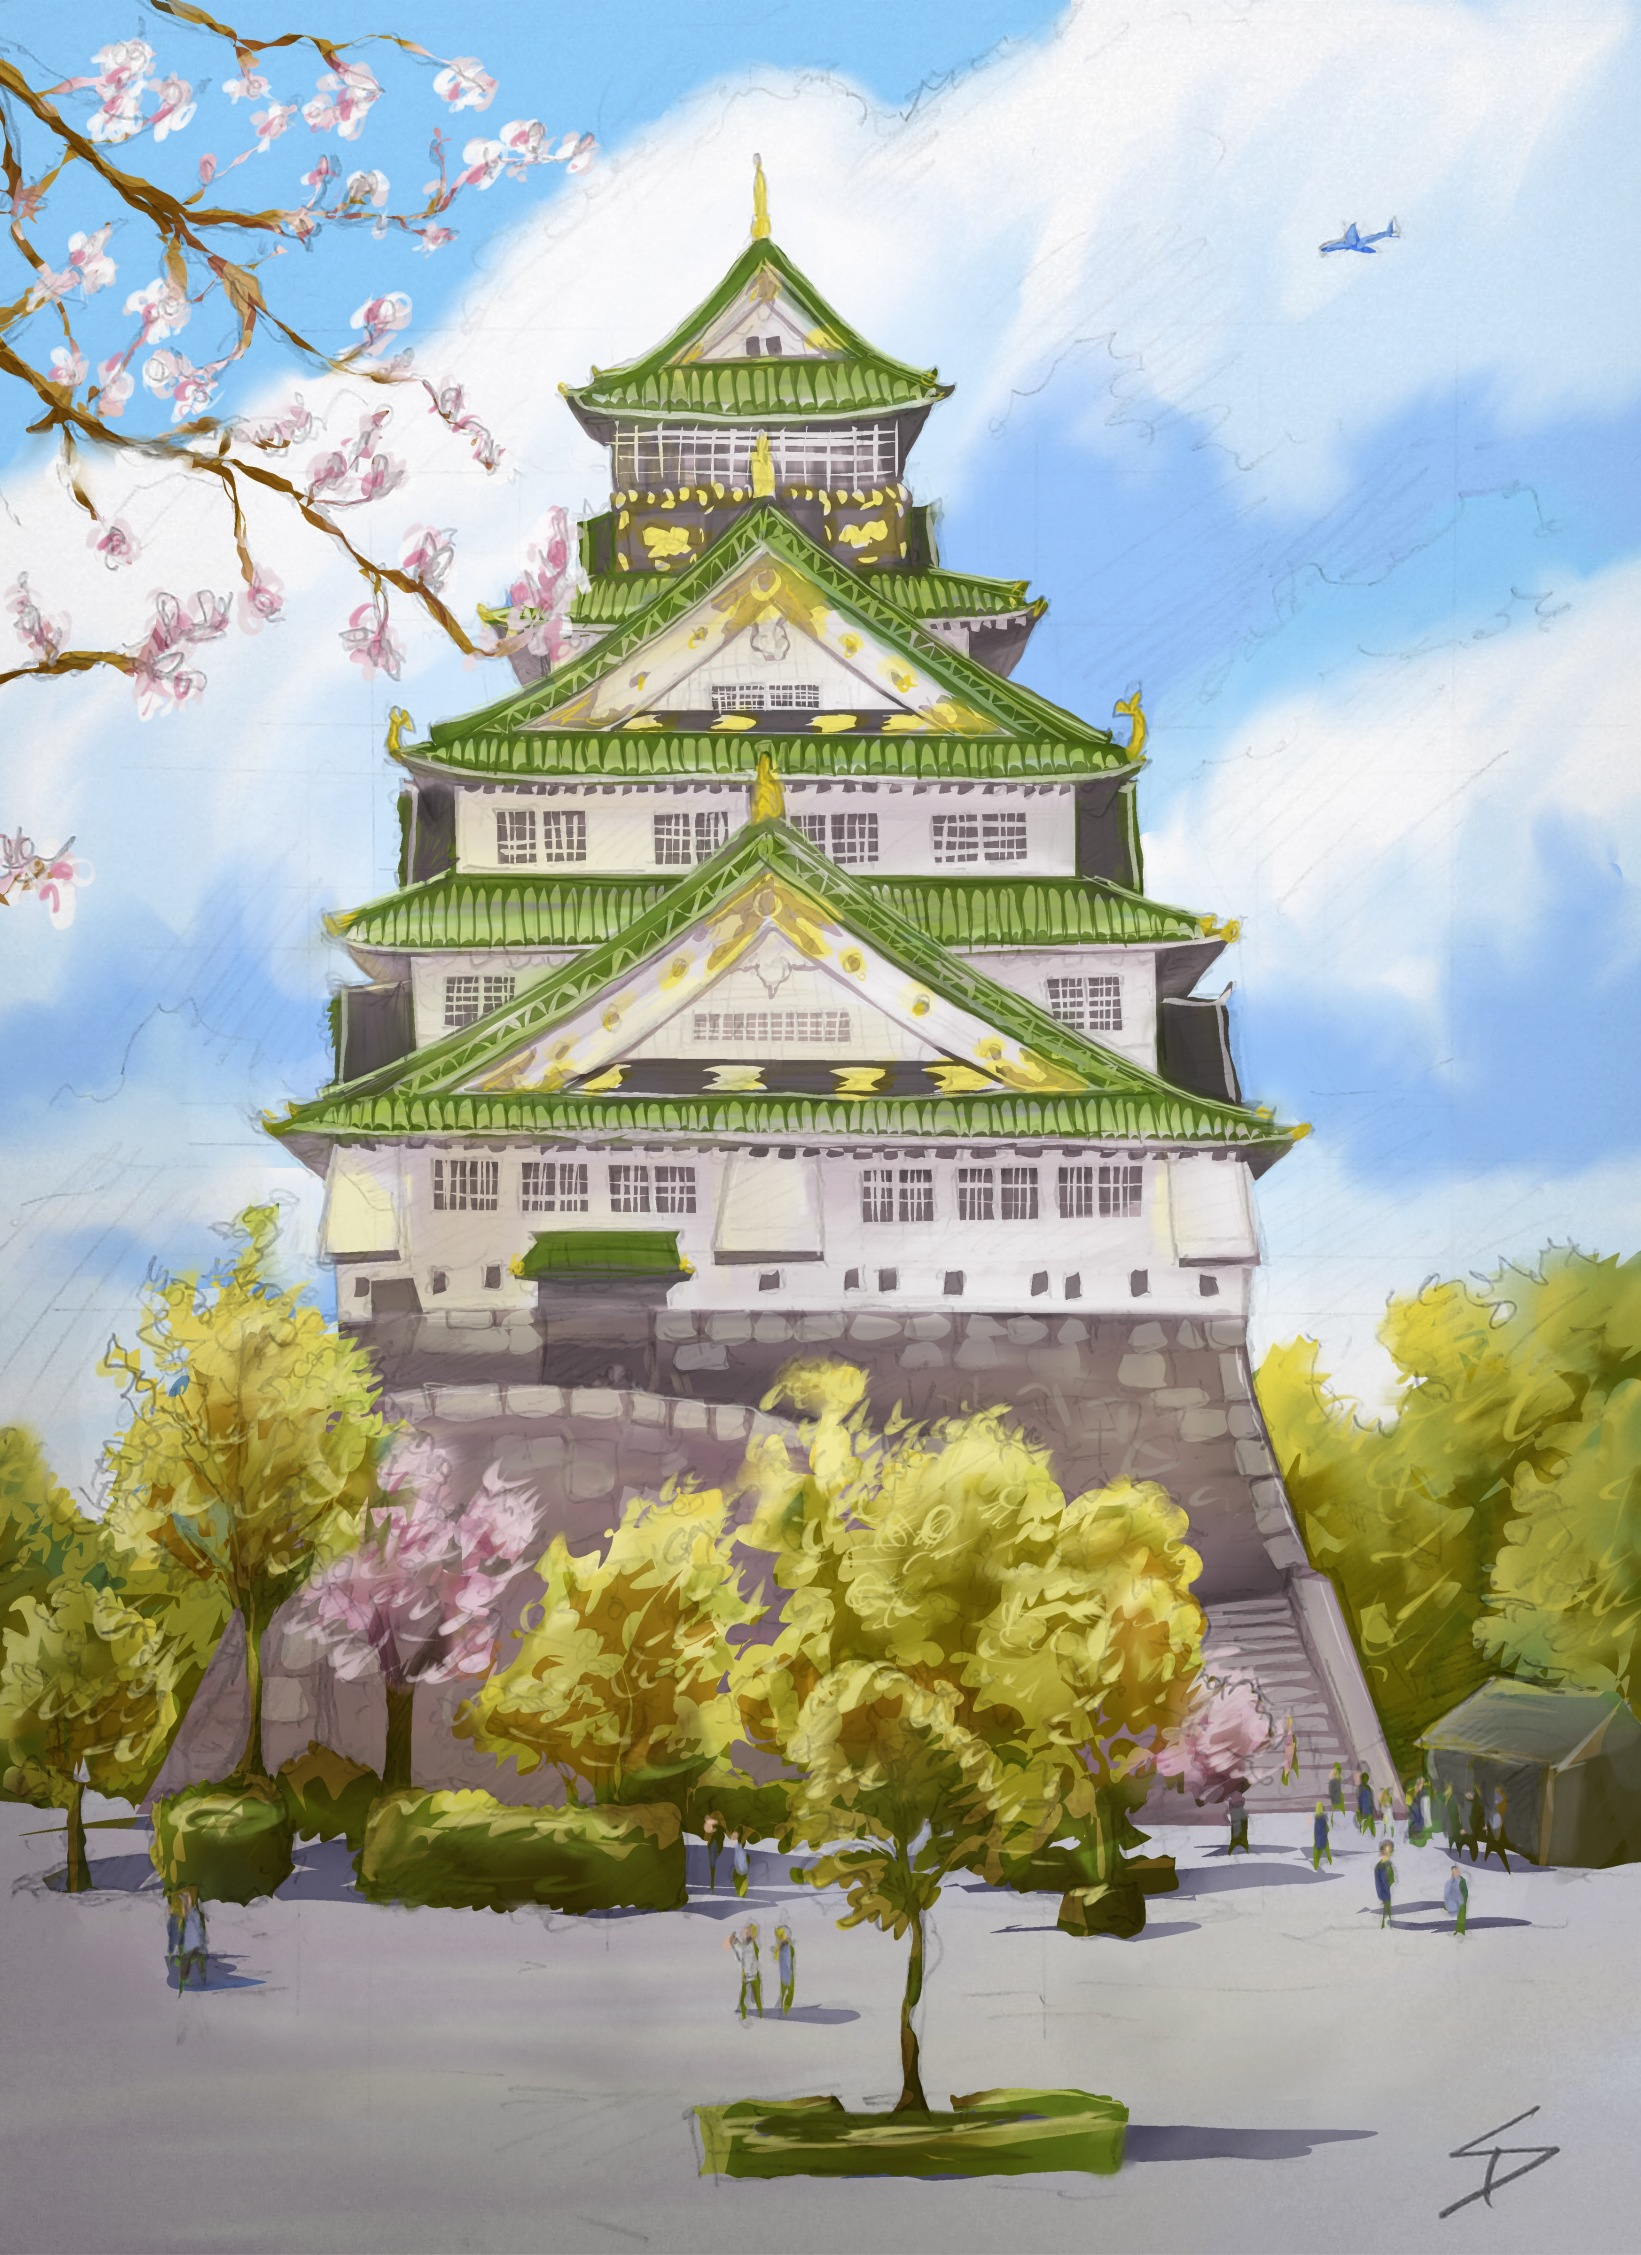 Ipad art - Chuo Ward, Osaka, Japan. 'Osaka Castle.' A digitally painted up version of my original sketch. sketchbookexplorer.com @davidasutton @sketchbookexplorer Facebook.com/davidanthonysutton #japan #osaka #chuoward #osakacastle #travel #travelblog #art #sketching #cheeryblossom #cherryblossomseason #cherryblossomjapan #ipadart #procreate #sketchbookpro